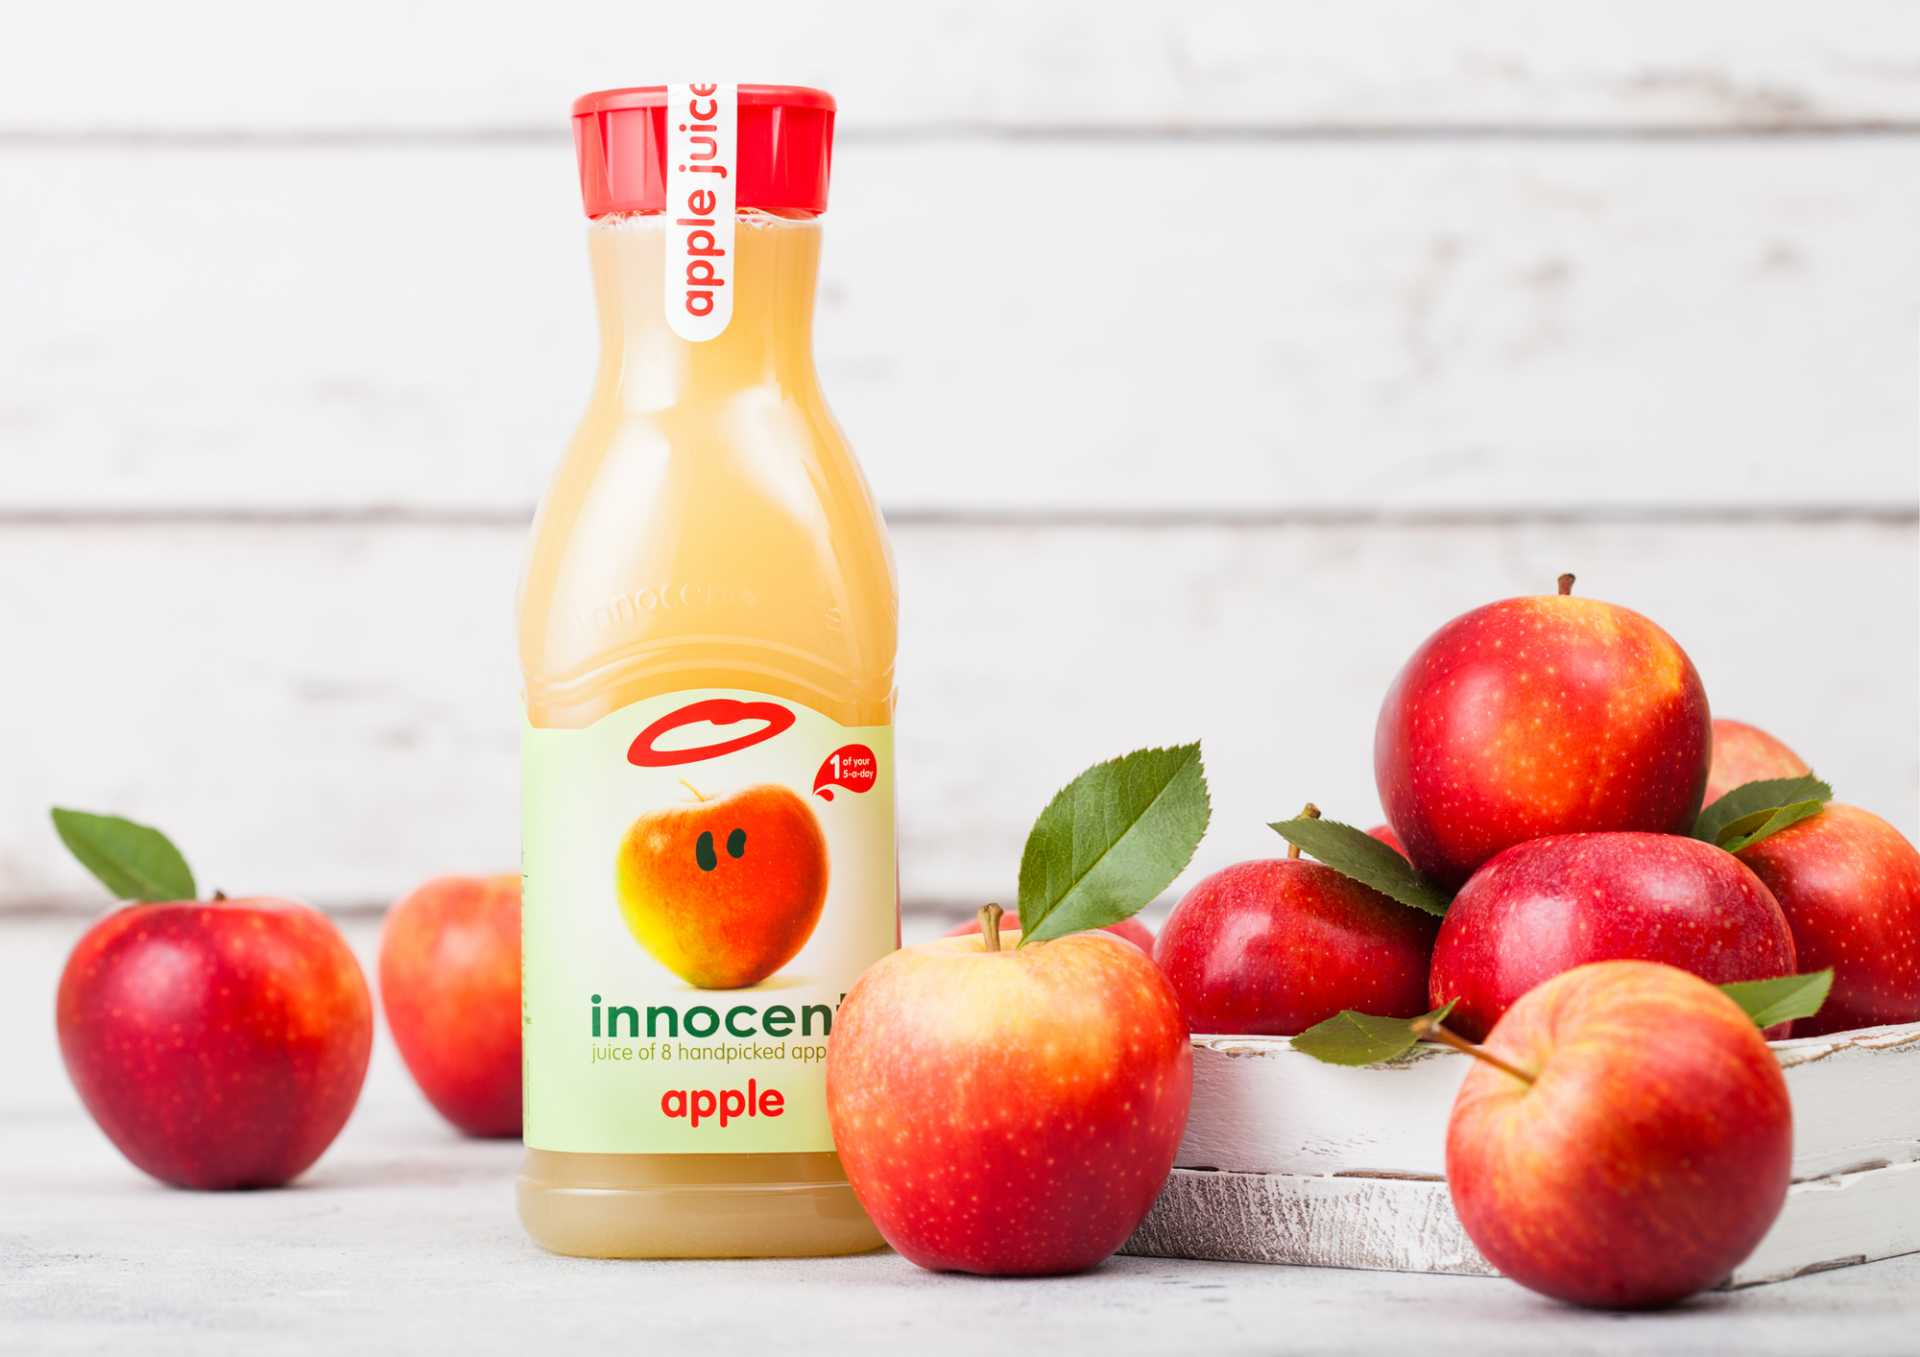 Innocent smoothies is a B Corp business - image courtesy of Depositphotos.